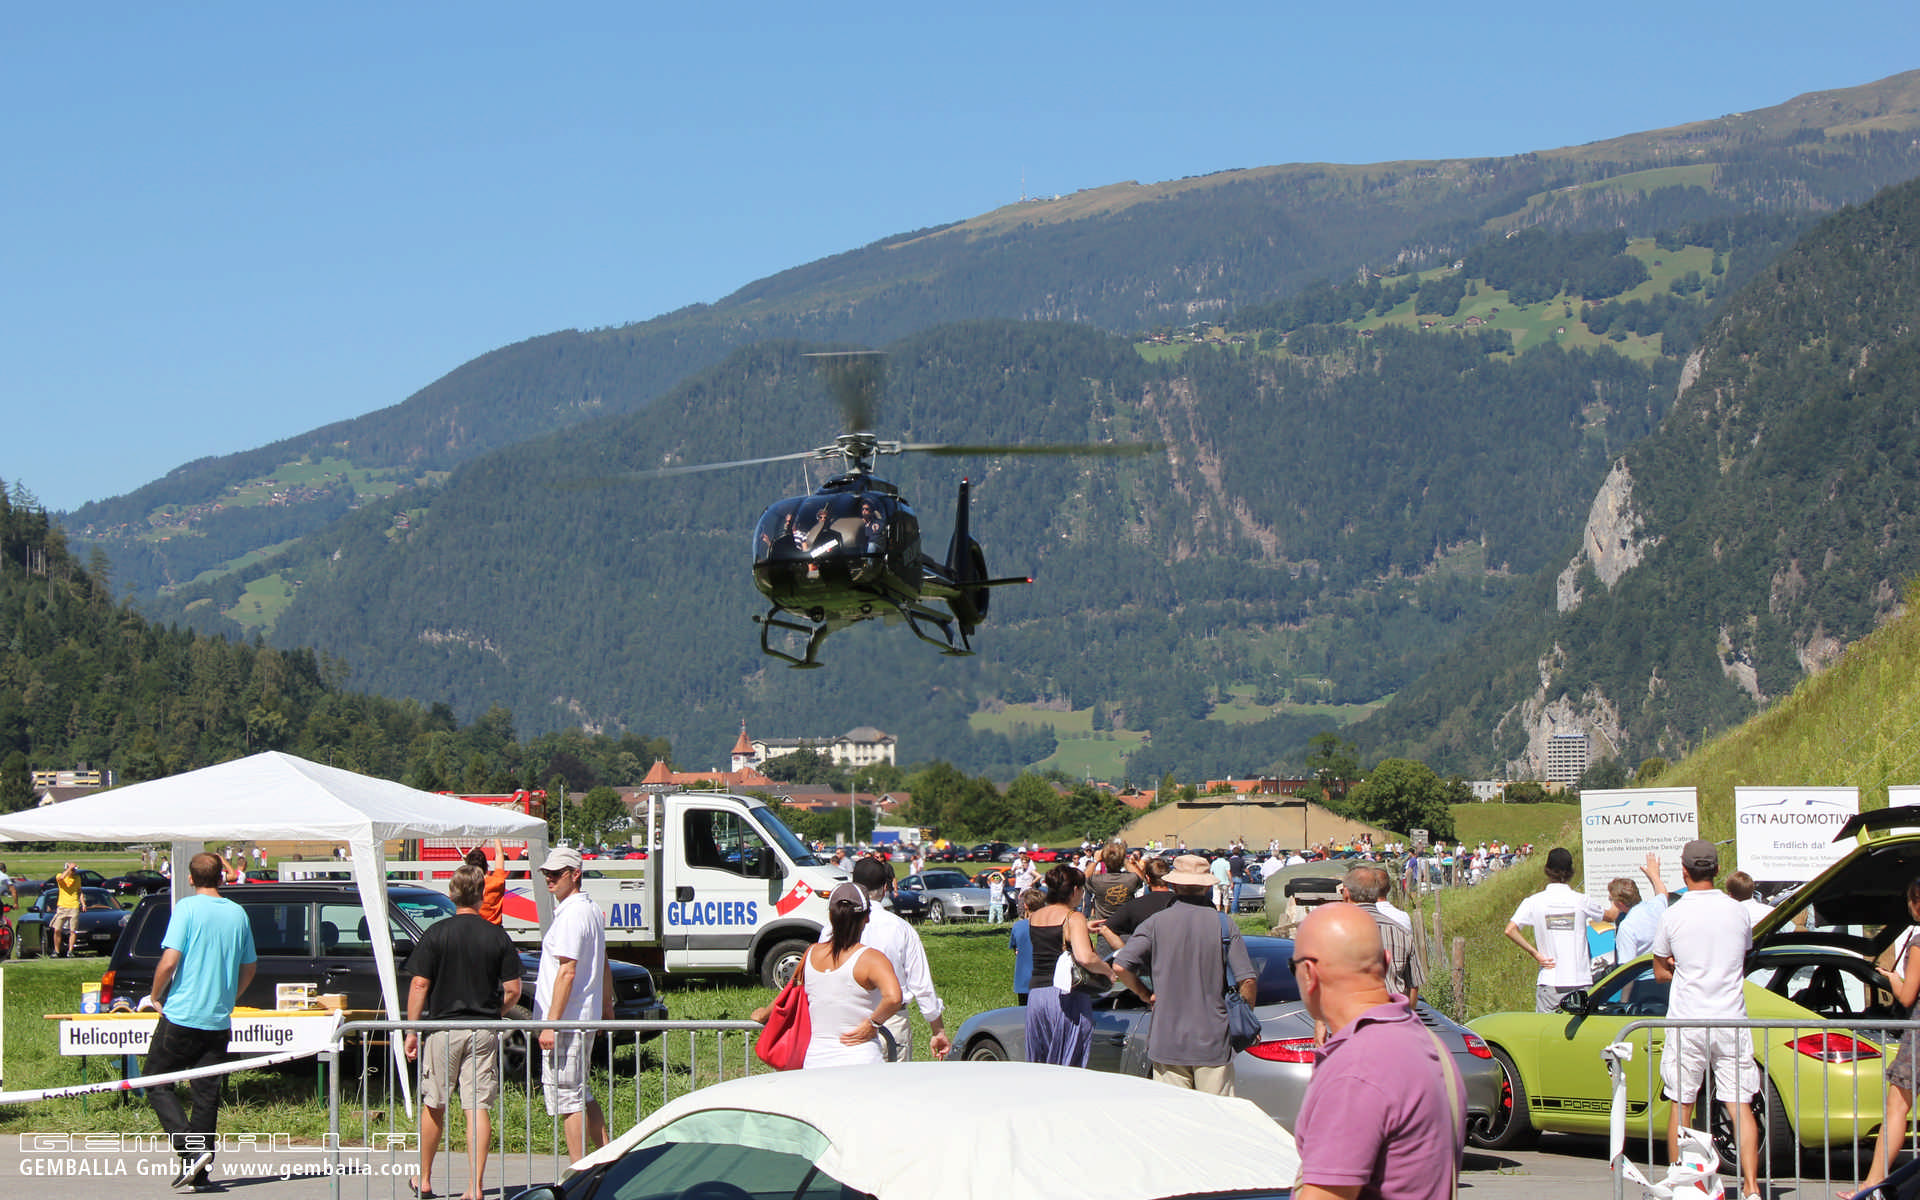 gemballa_gmbh_event_pt_interlaken_2012_010